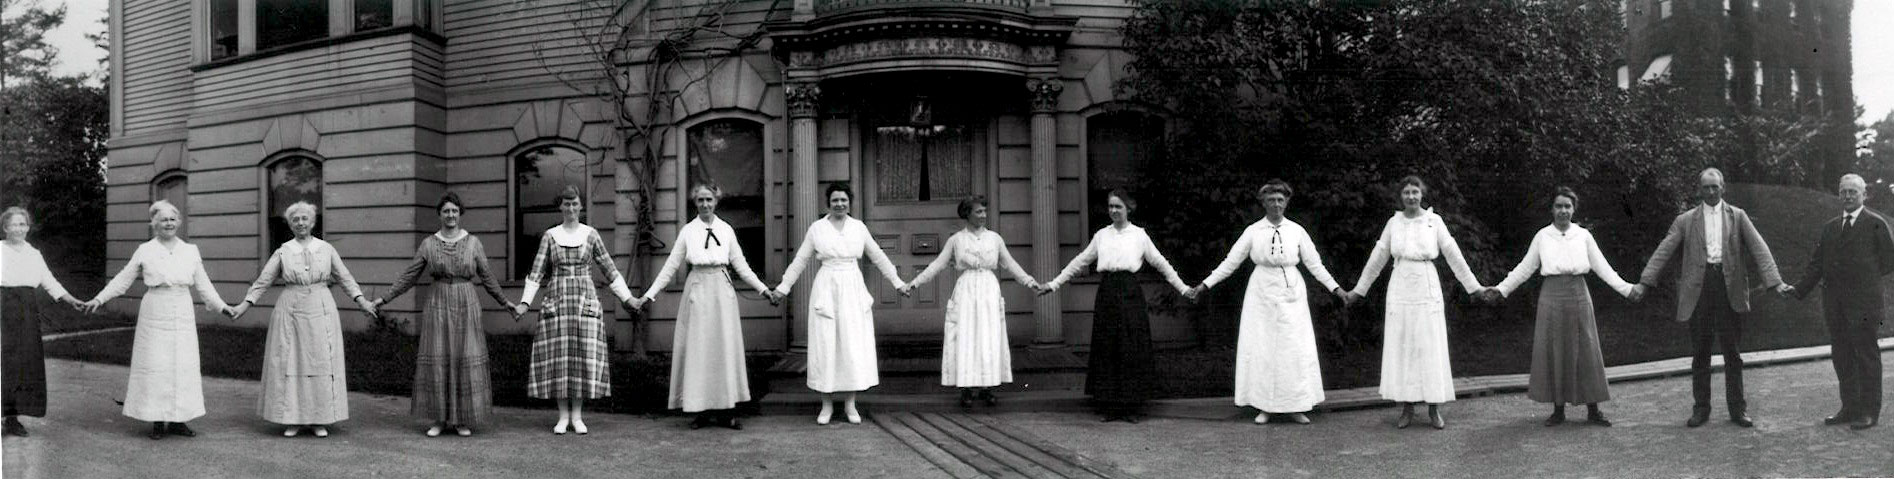 """A dozen women hold hands in front of a building on the Harvard campus in 1918. They are all women """"computers"""" working in the Harvard College Observatory. At the far right of the image is Edward Pickering, the head of the Observatory who hired them all."""